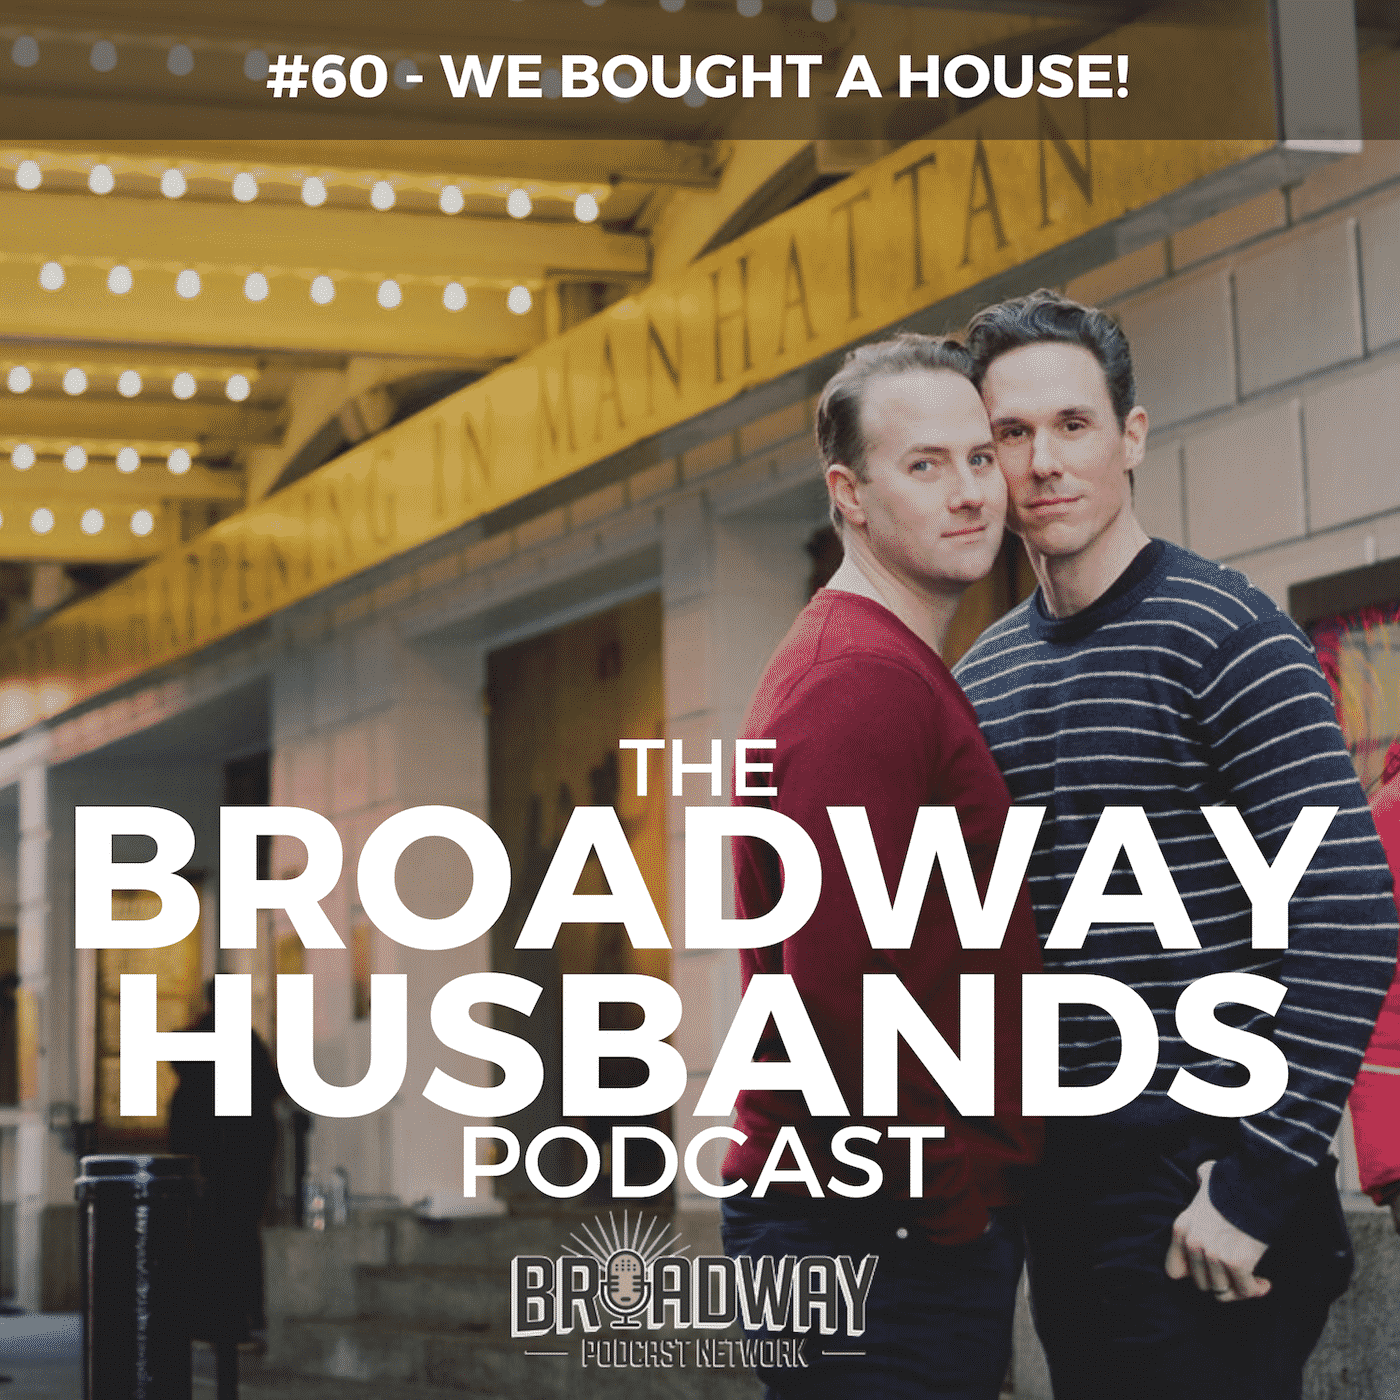 #60 - We Bought a House!